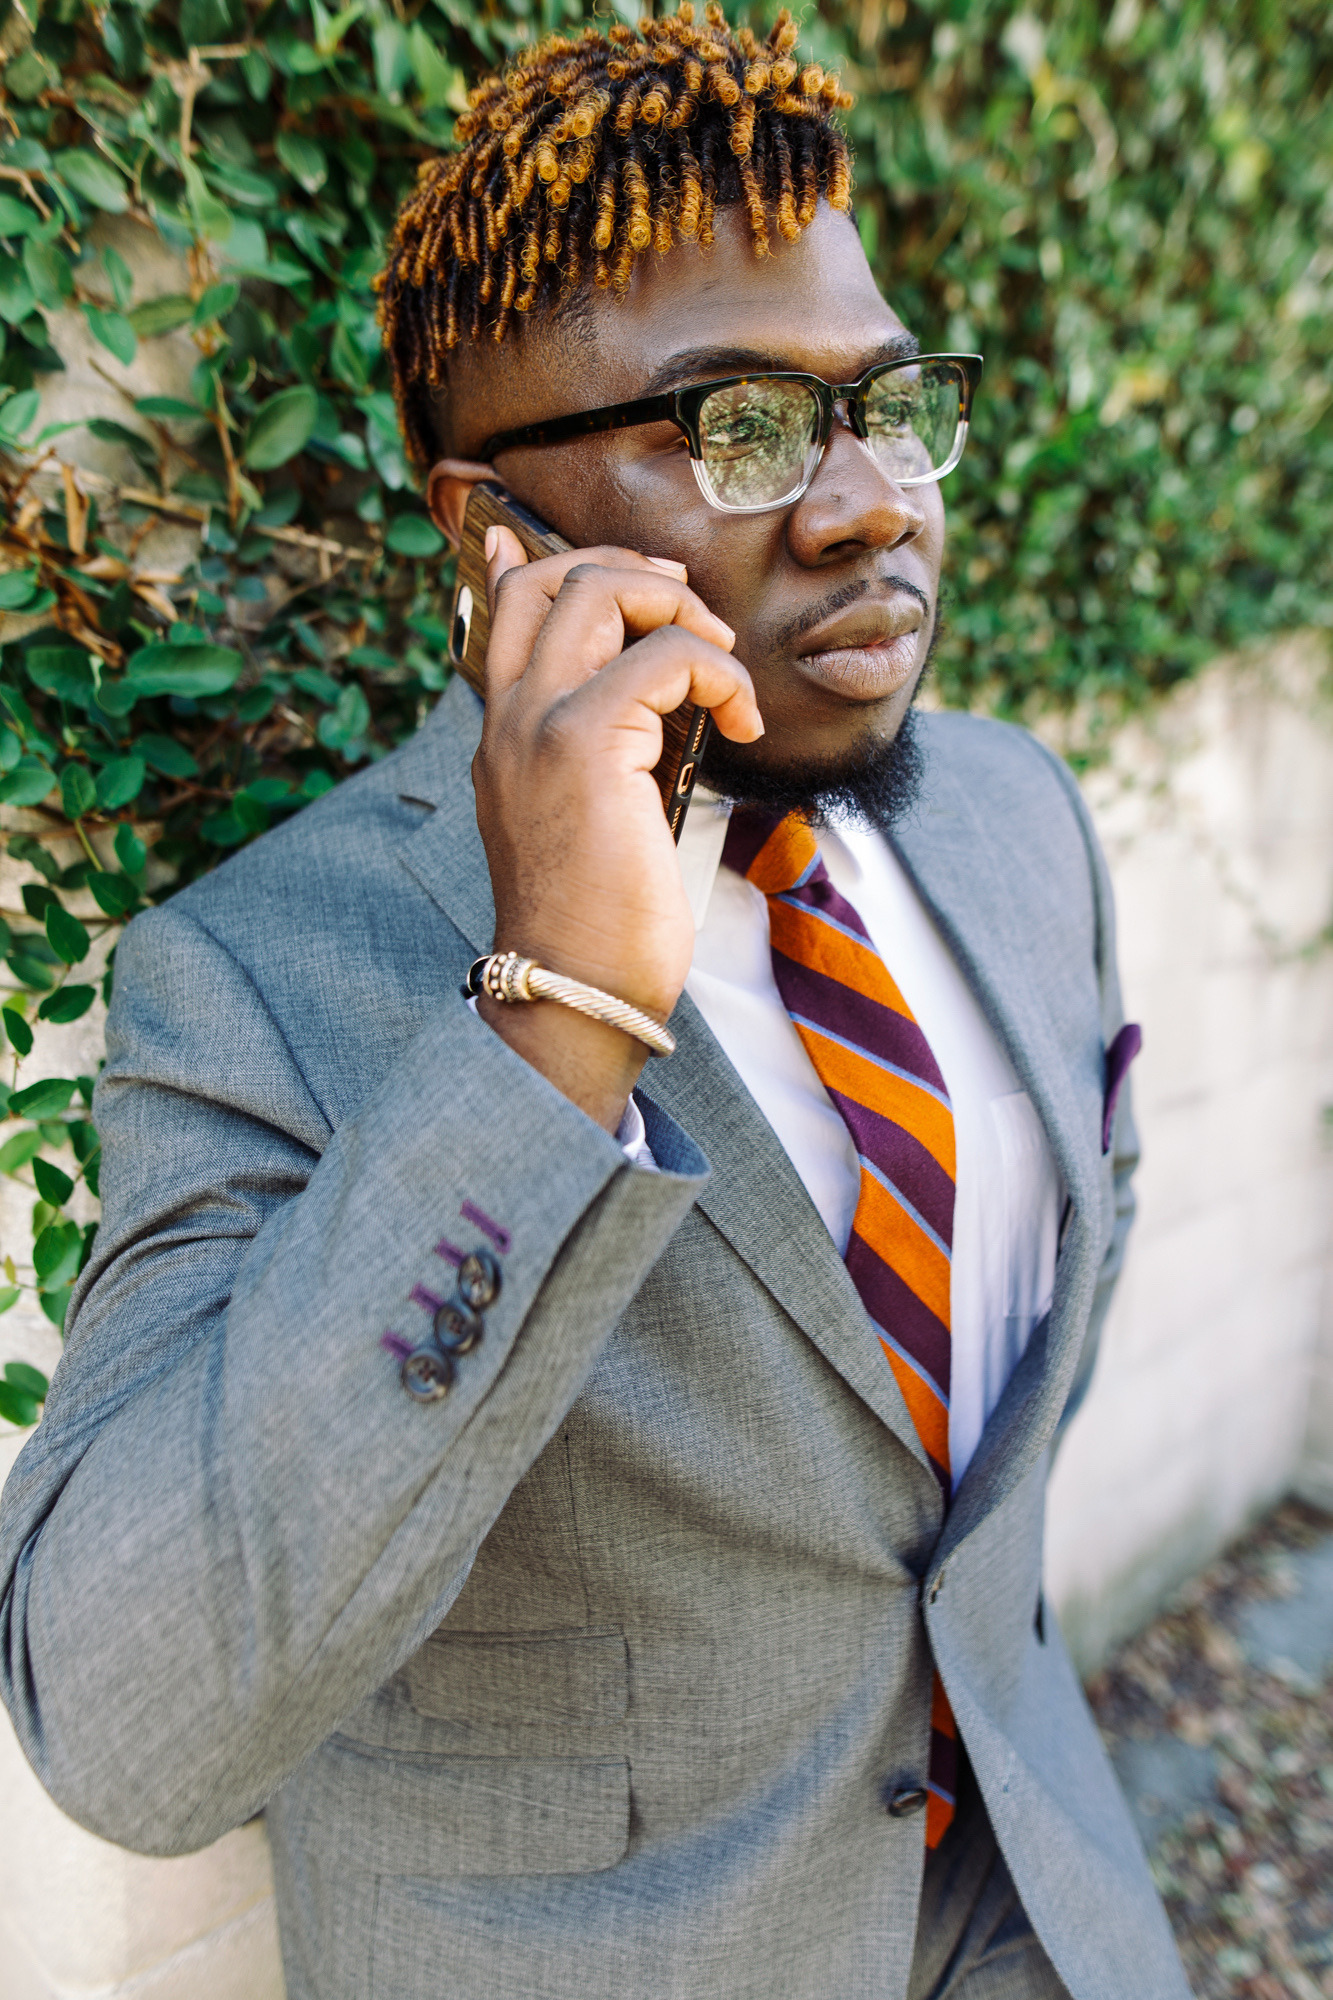 30 for 30 - Thirty for thirty is like a stylist hotline. Fashion Mr. will assist you virtually (Skype, FaceTime, Text) up to thirty mins for thirty dollars.